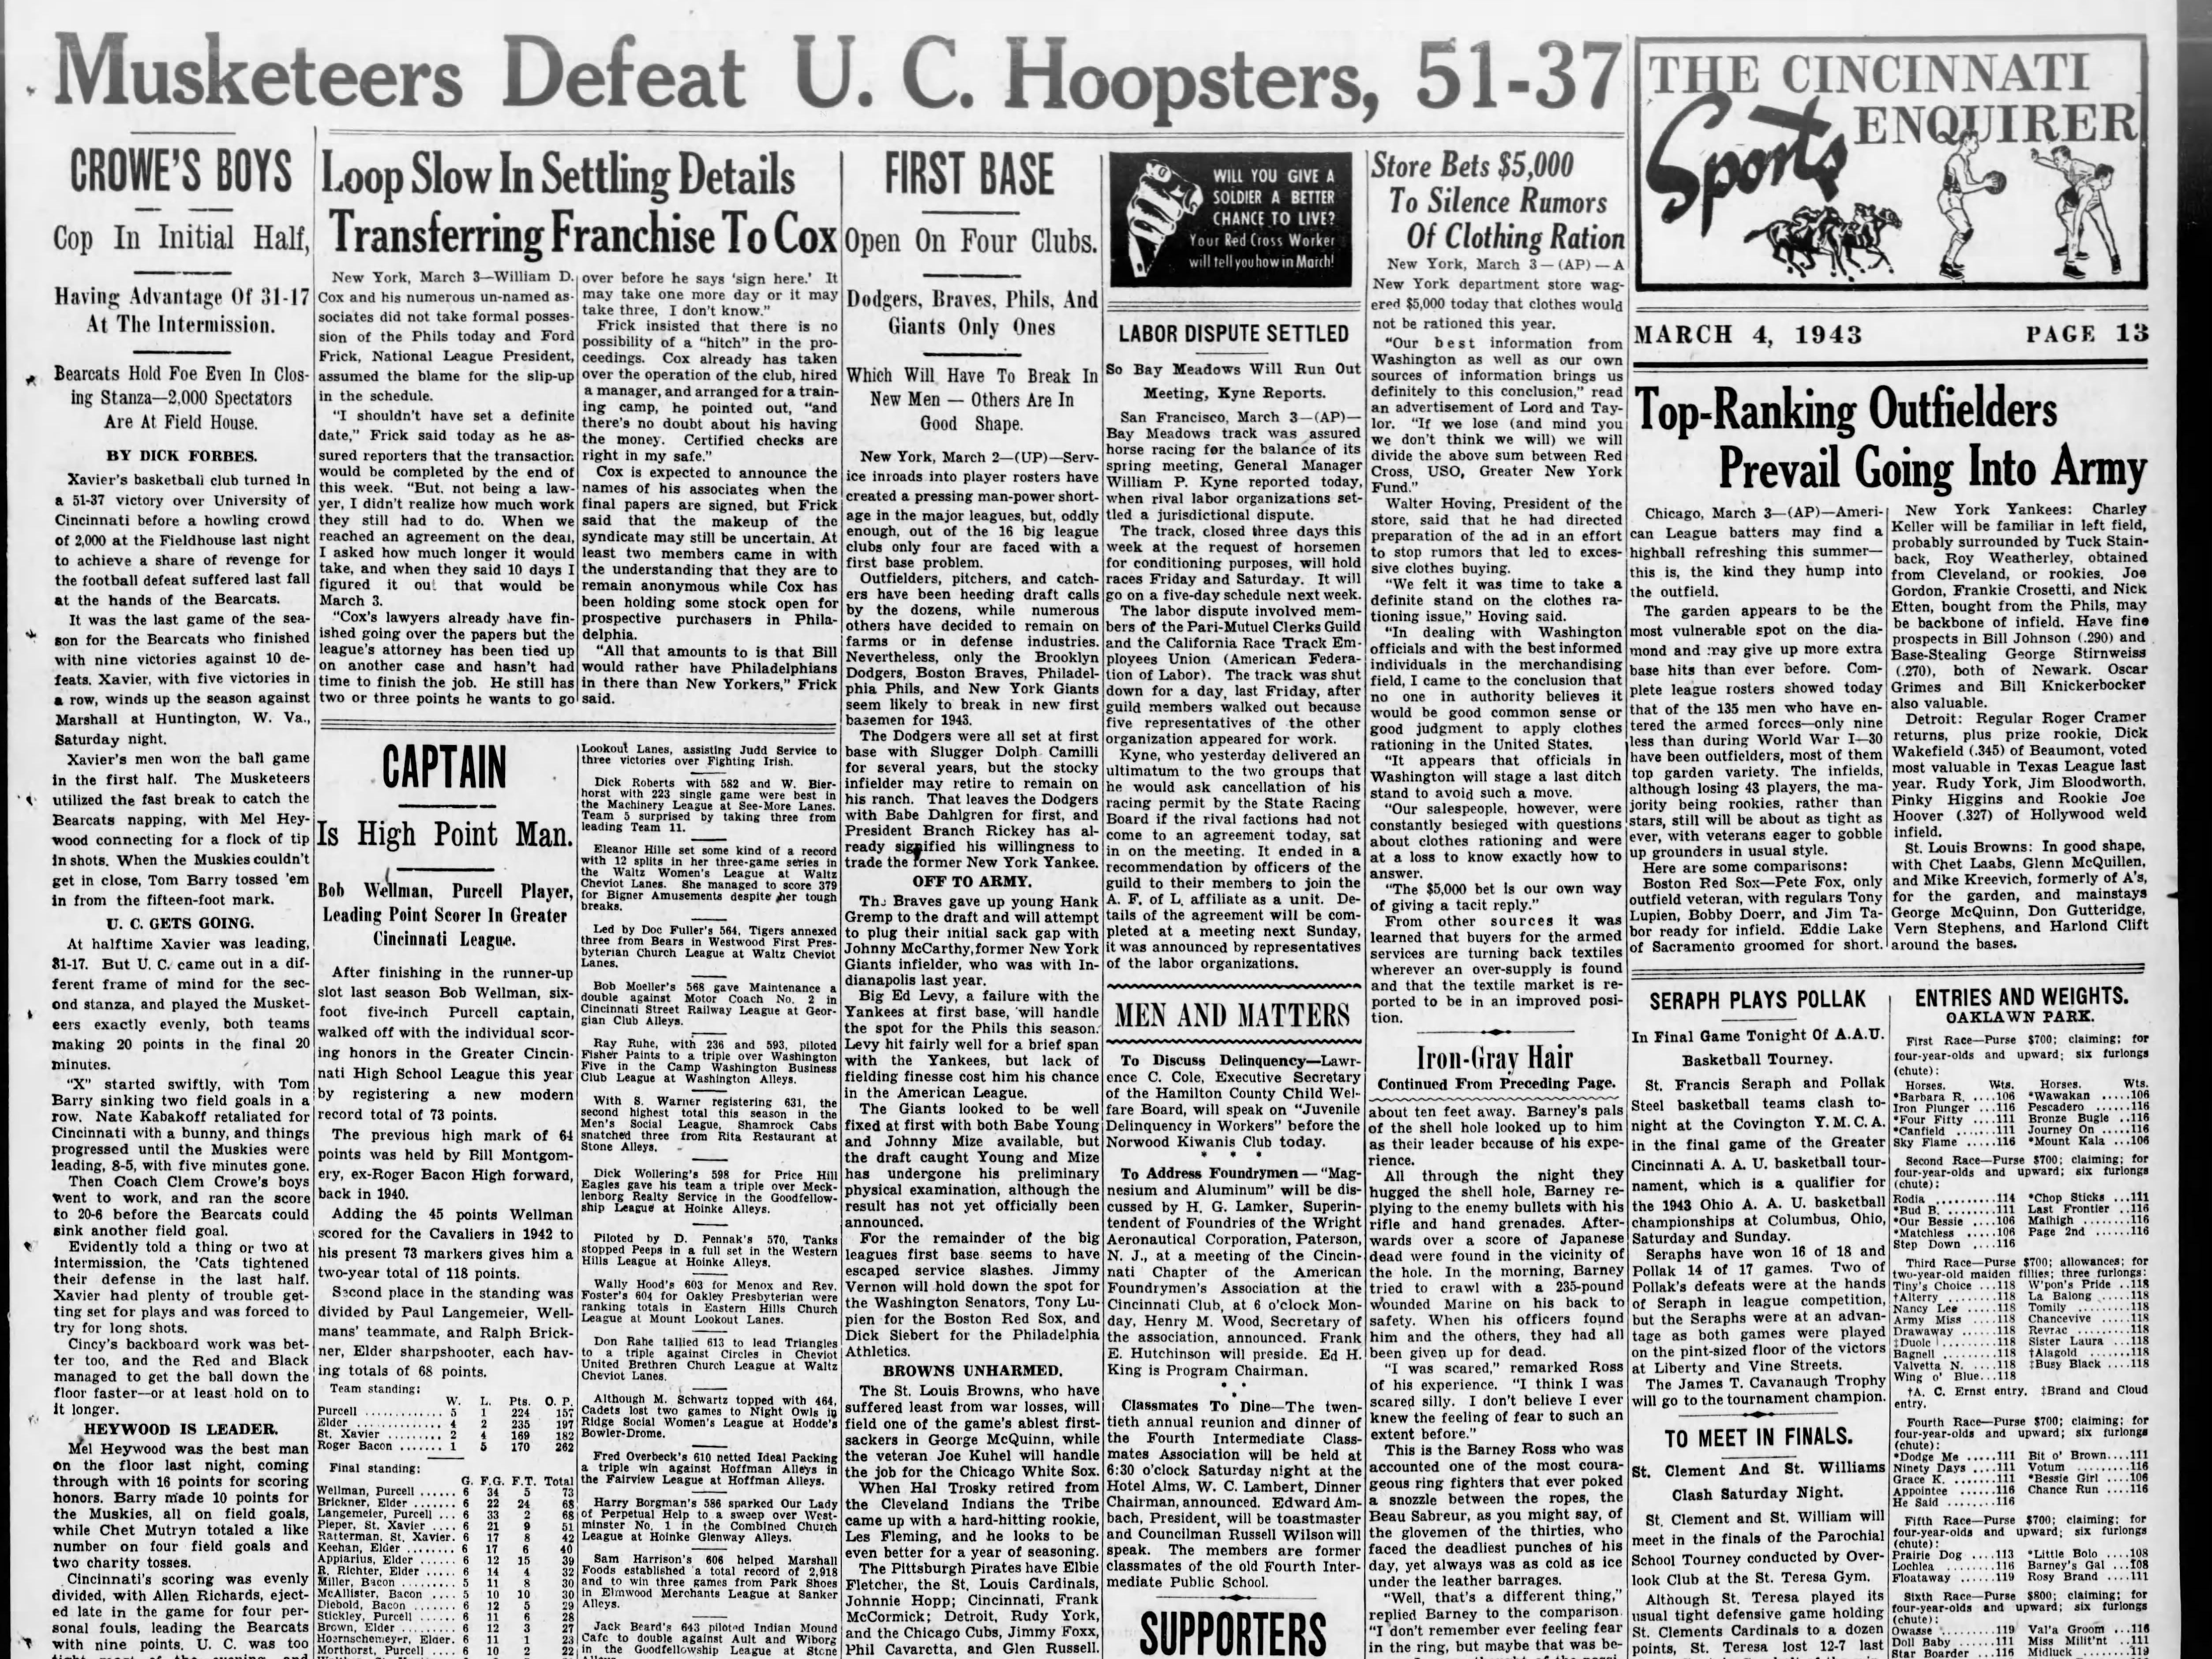 The rivals didn't meet after the 1928 game until Xavier defeated UC 51-37 in 1943.